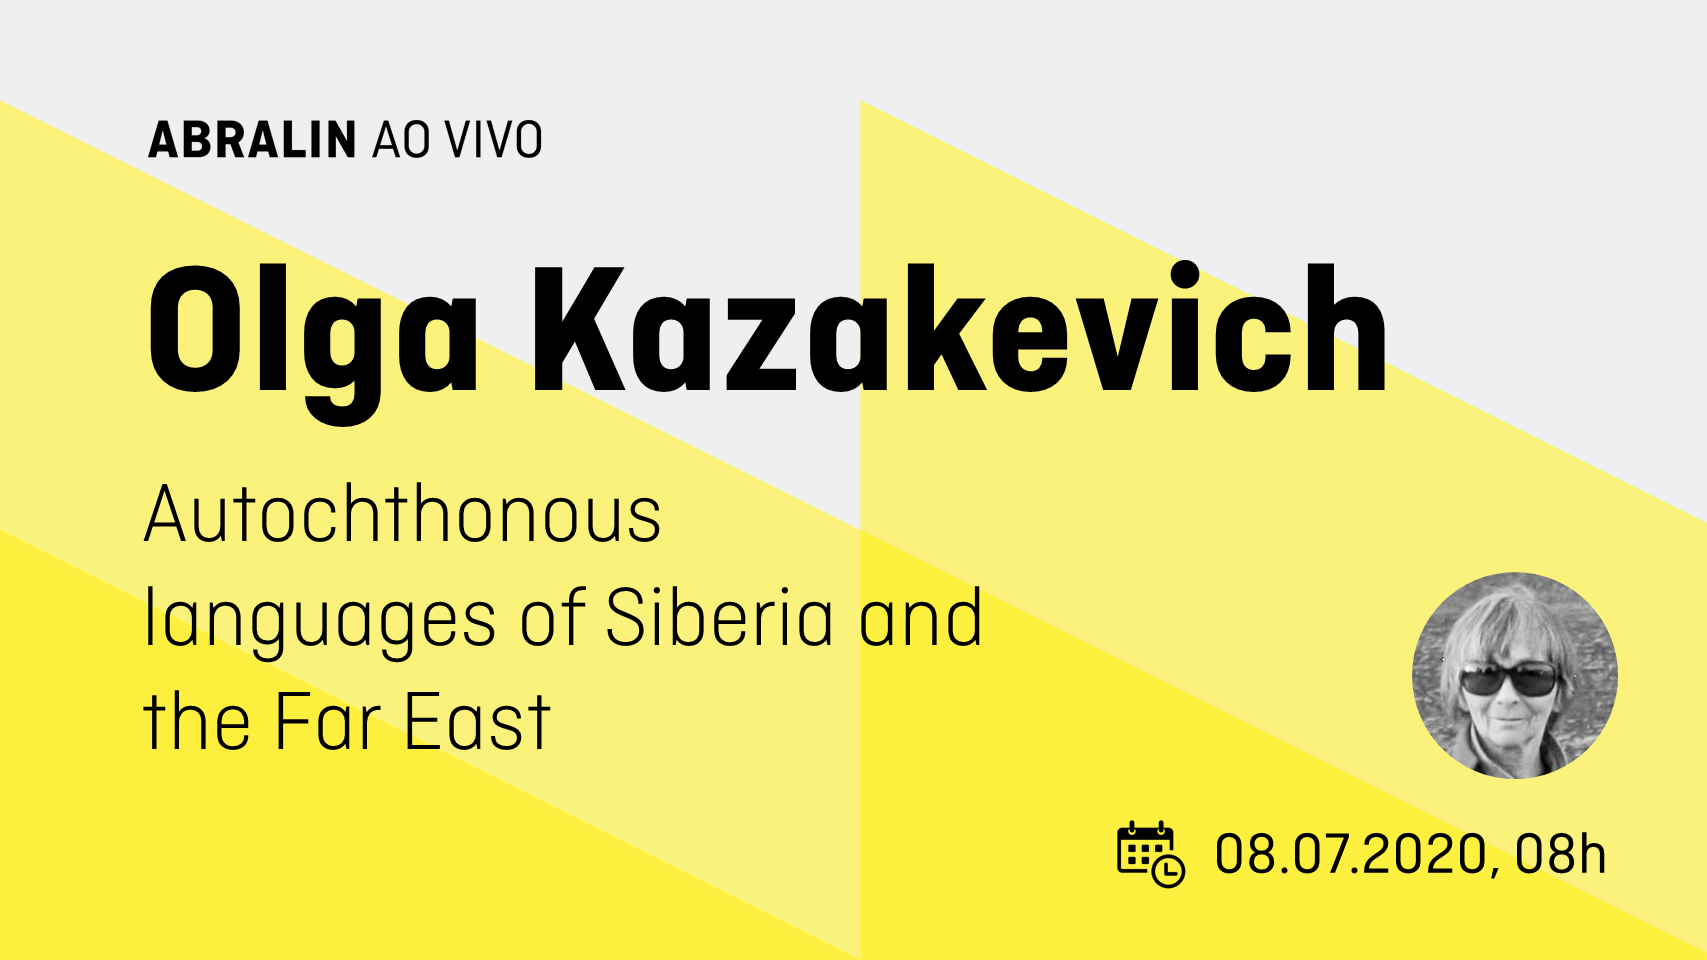 Лекция О. А. Казакевич 8 июля в 14:00 «Autochthonous languages of Siberia and the Far East: documentation, functioning, language contacts and language shift in ethno-local groups»